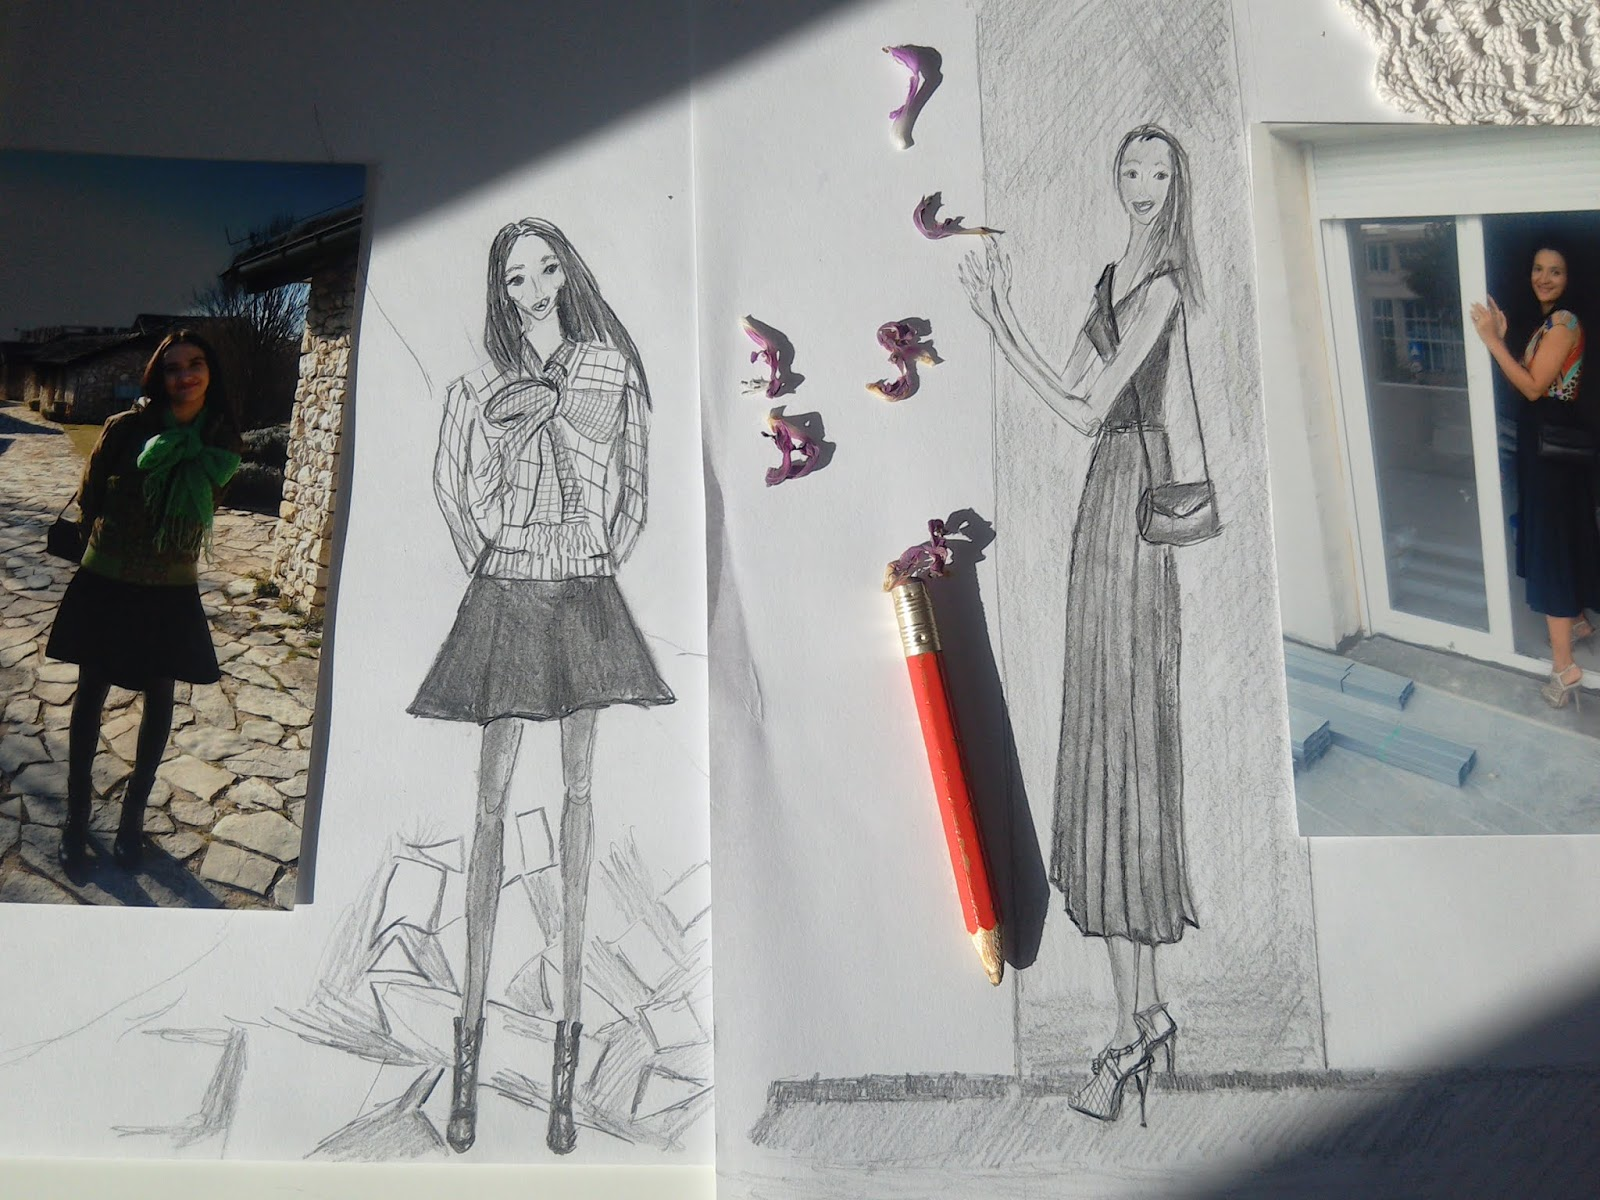 #FashionIllustrations in #Pencil: My Answer To Drawing With or Without a Reference Dilemma.